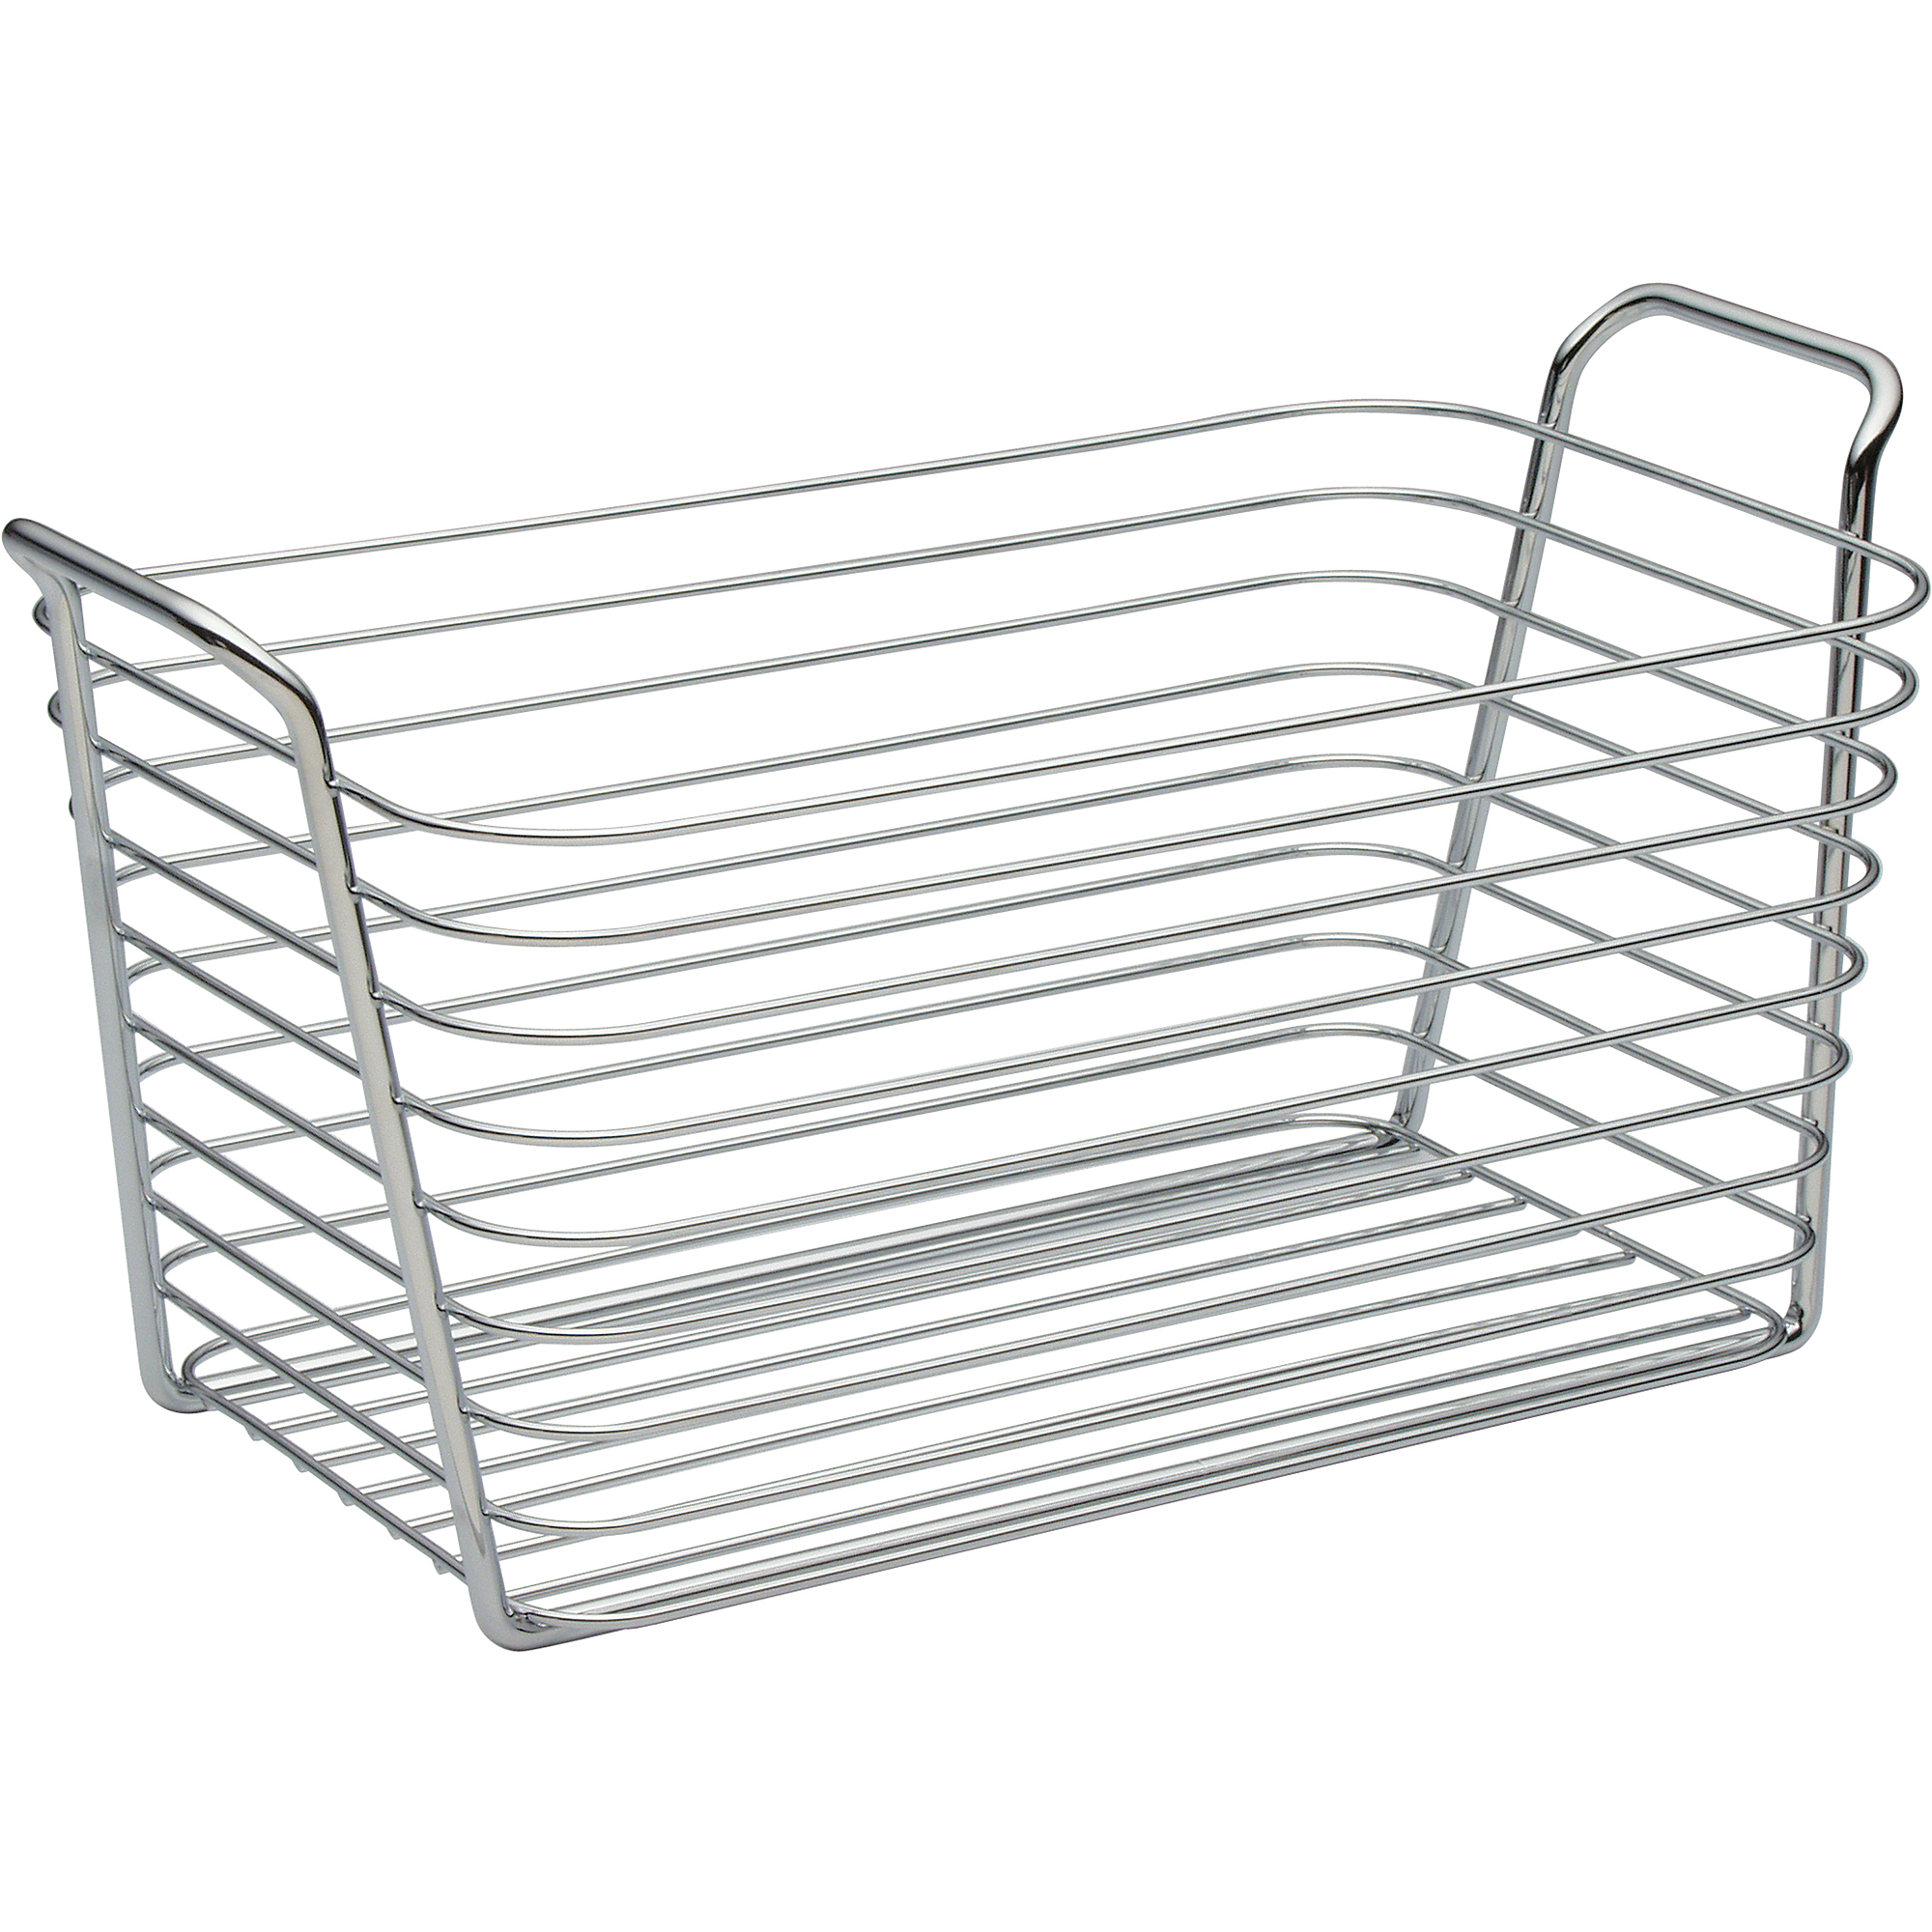 InterDesign Classico Kitchen Pantry Bath Medium Organizer Wire Basket, Chrome